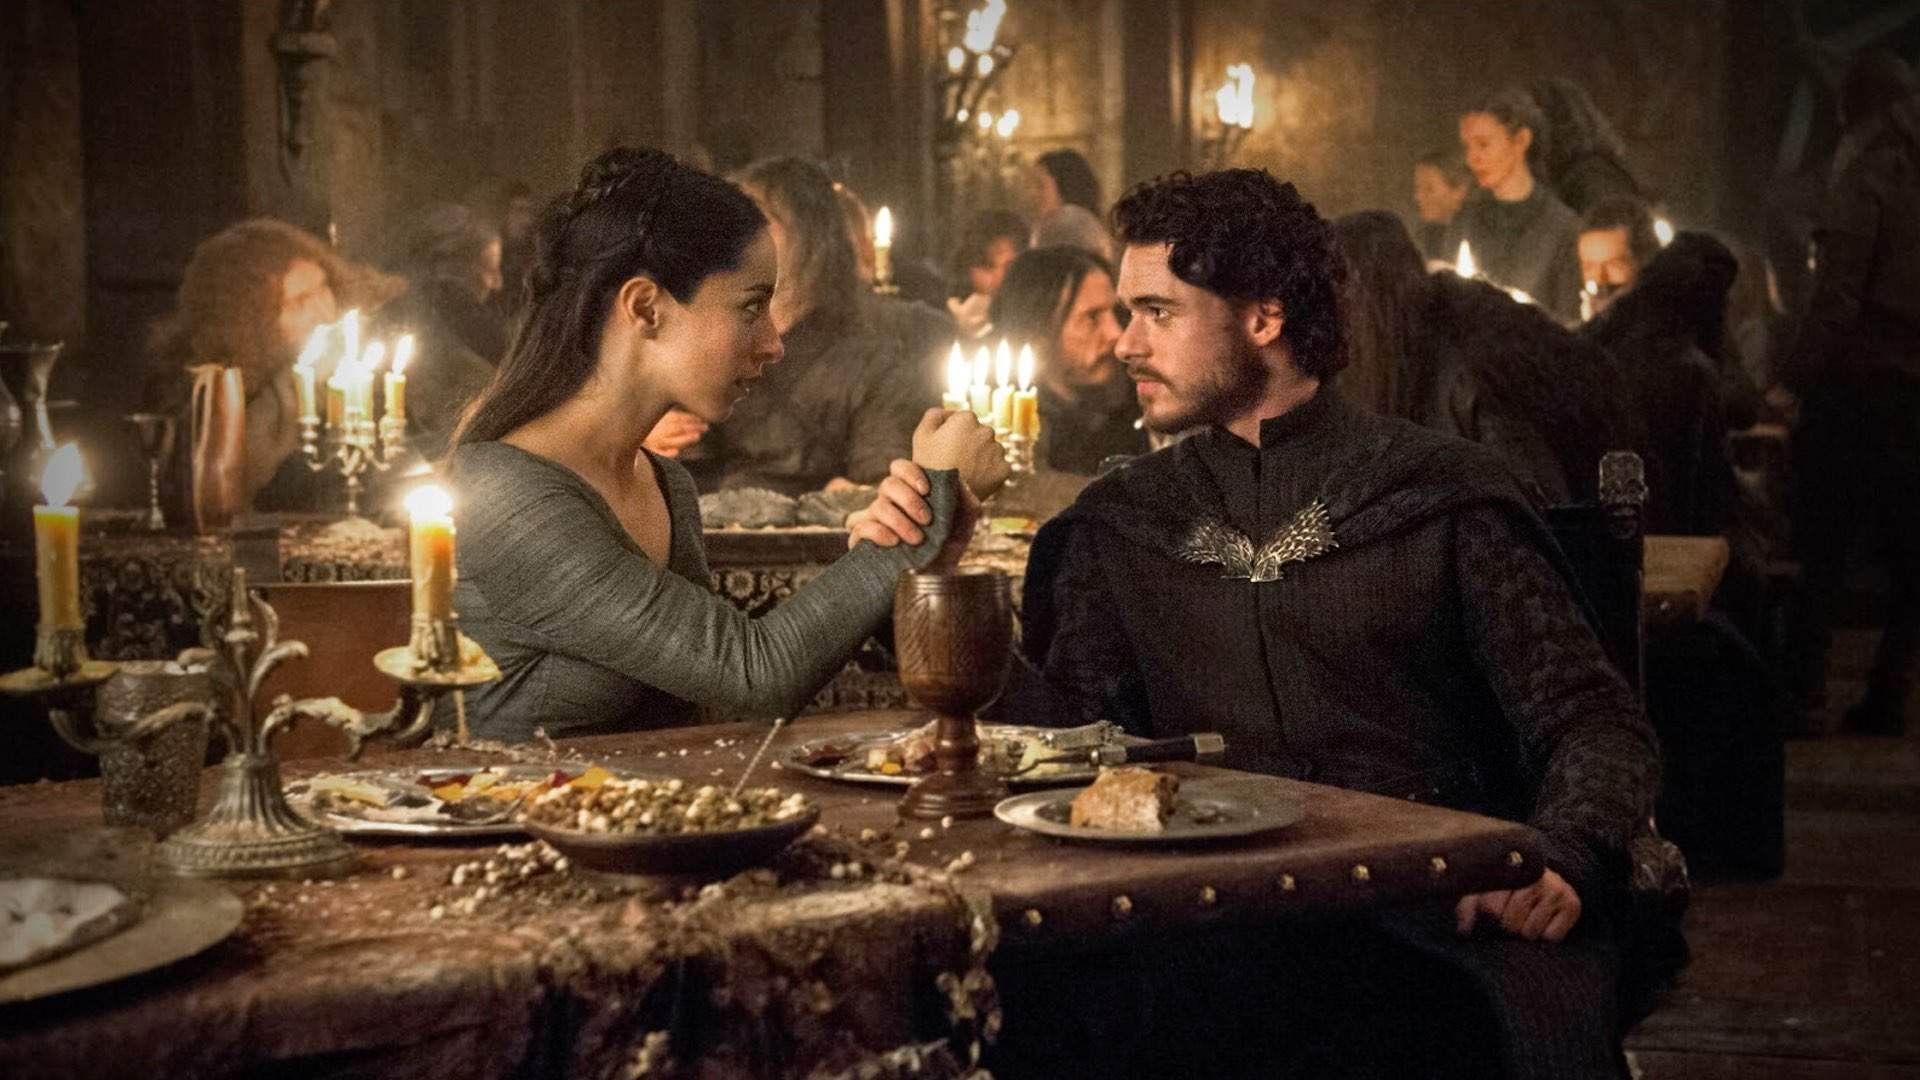 A 'Game of Thrones'-Style Medieval Banquet Is Coming to Melbourne